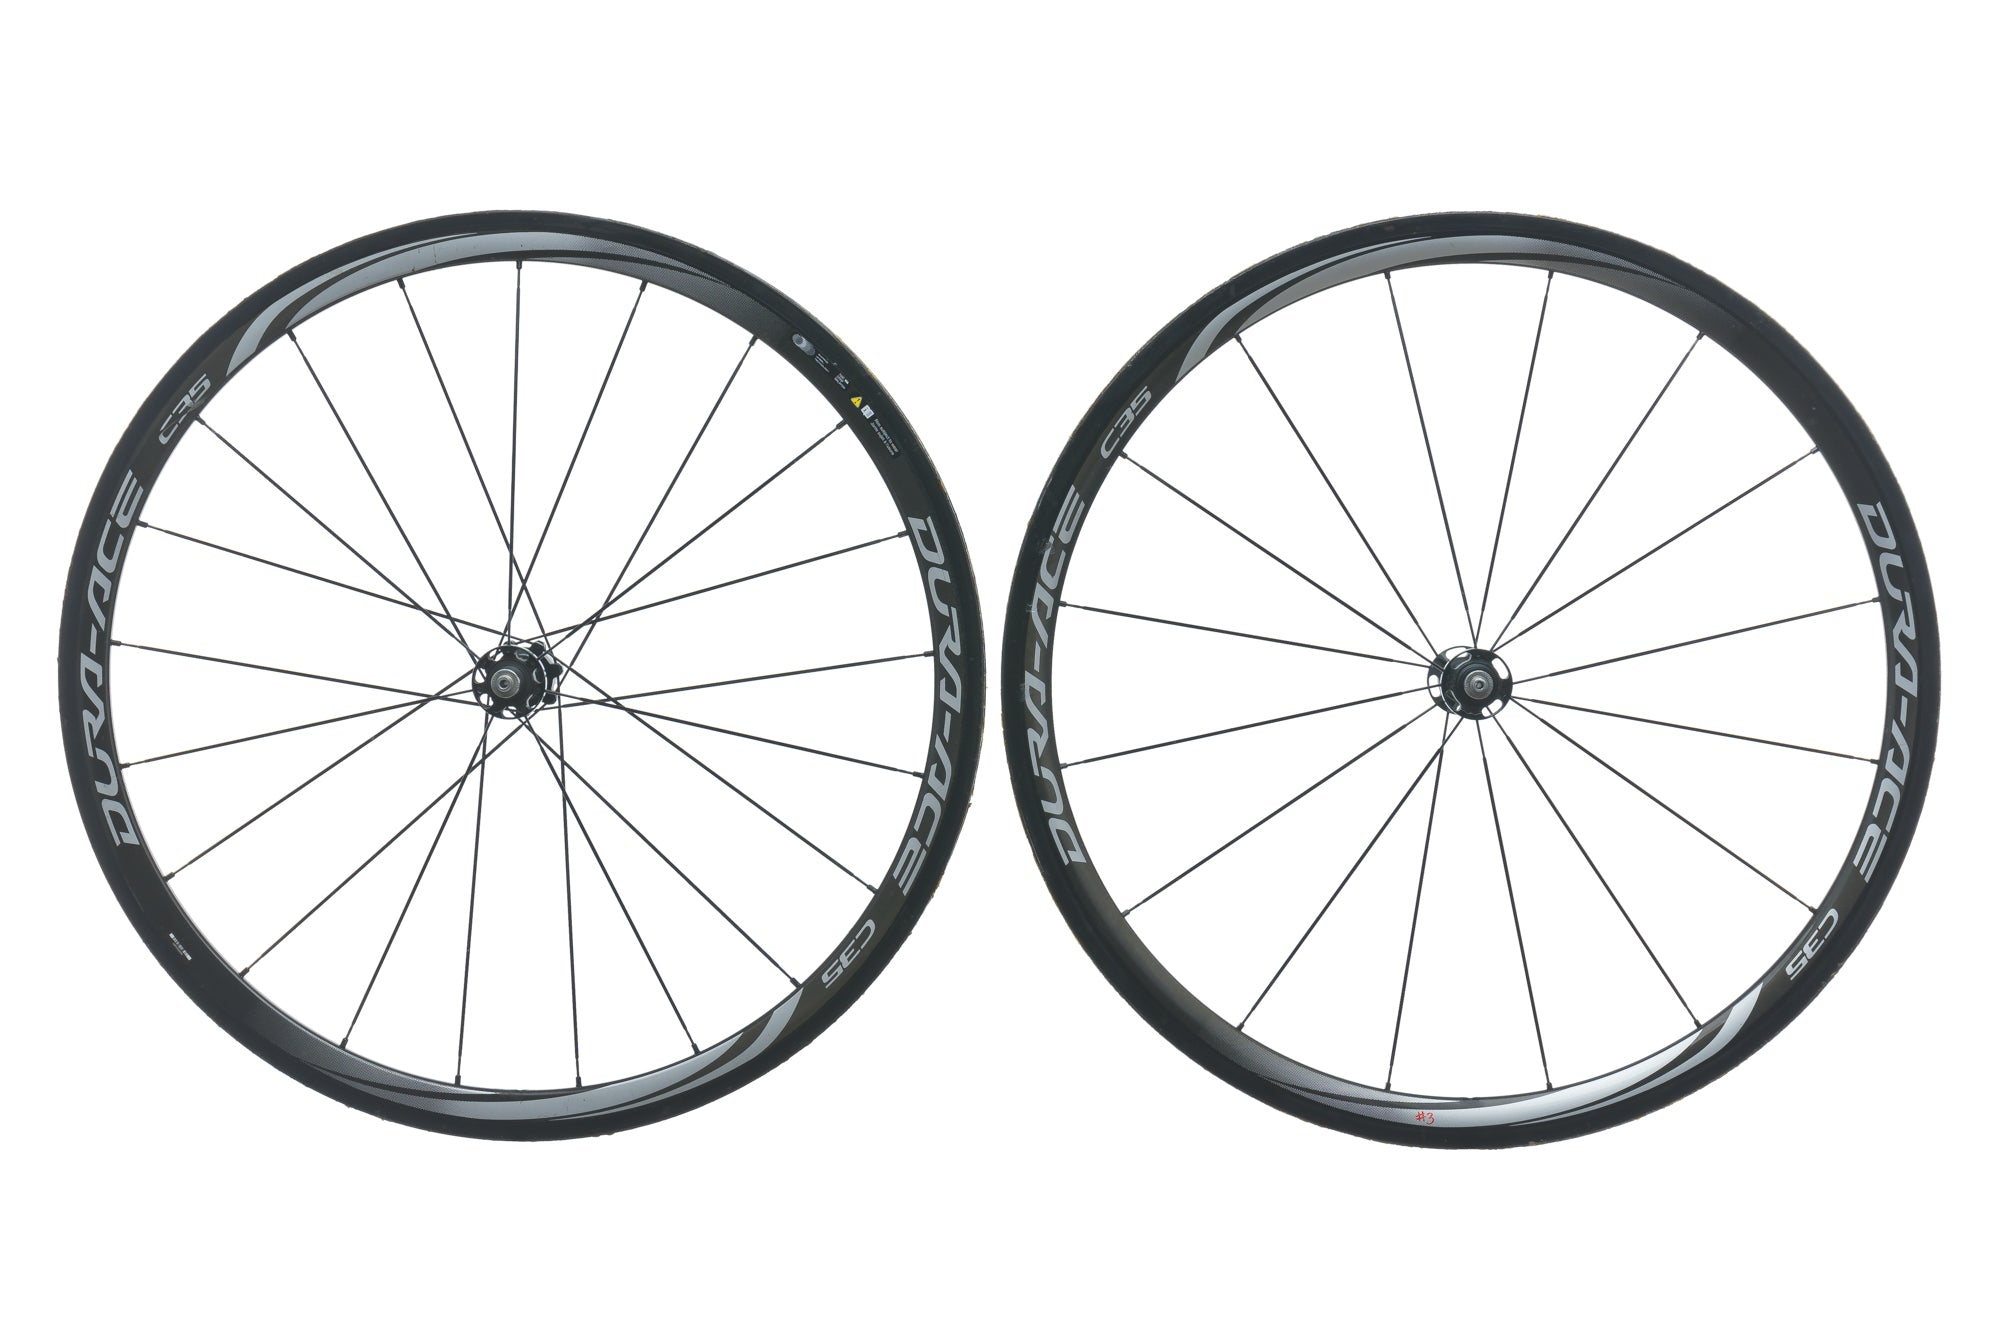 Shimano Dura Ace C35 WH-9000 Carbon Tubular 700c Wheel Set drive side